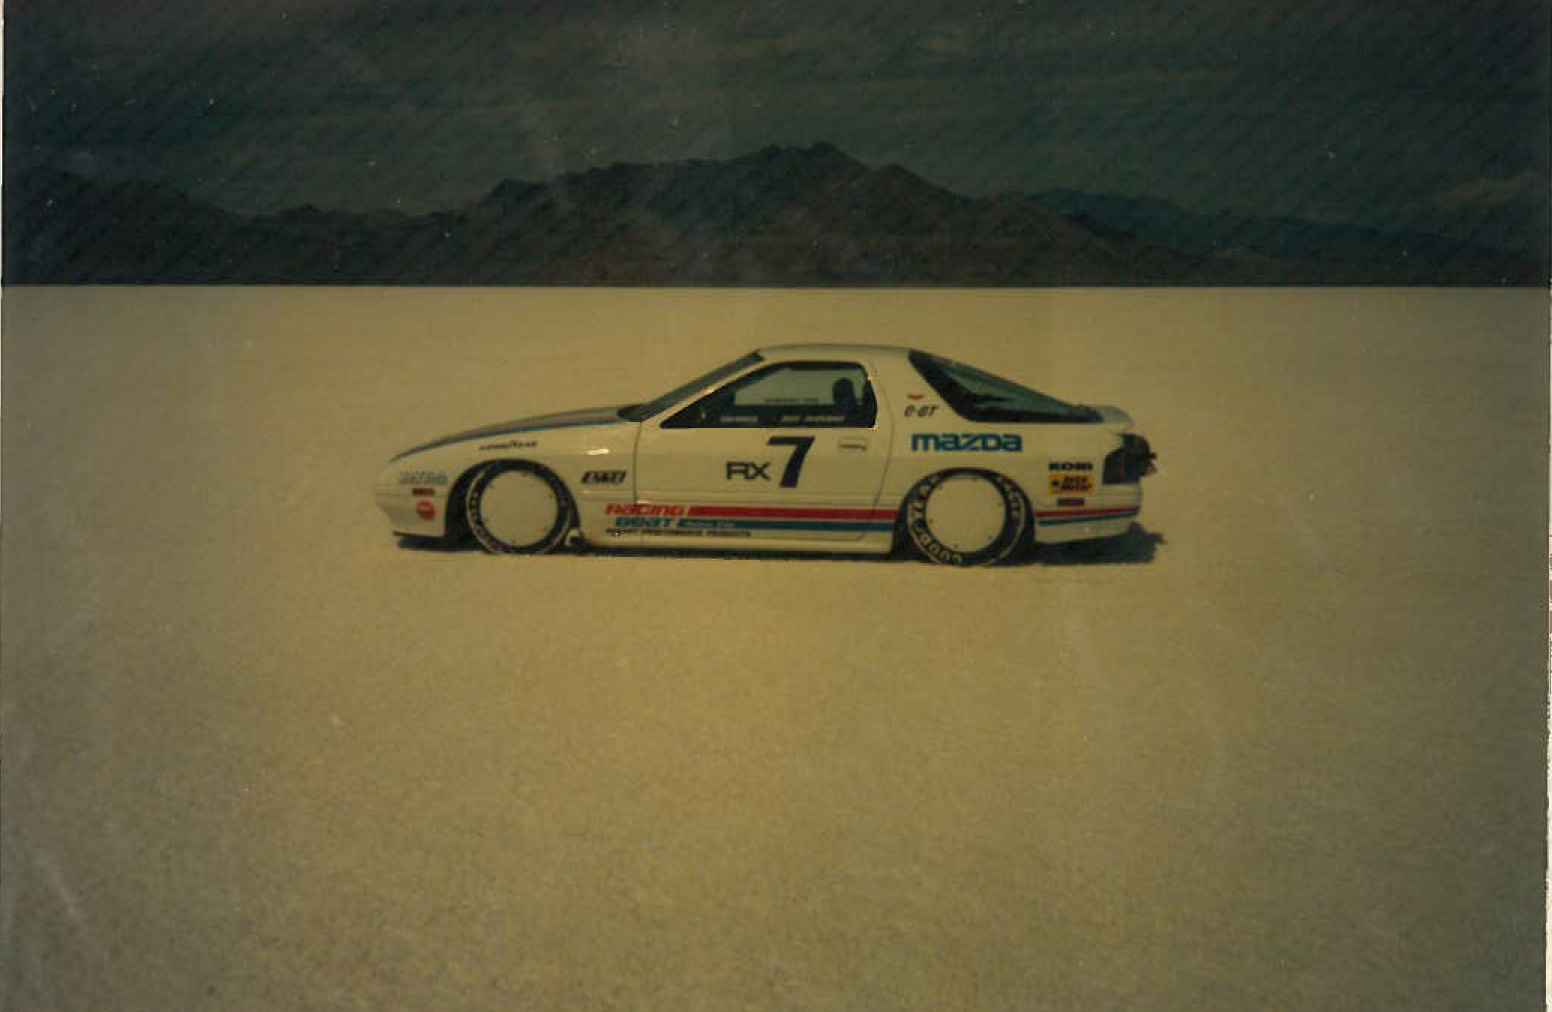 RX-7 at Bonneville